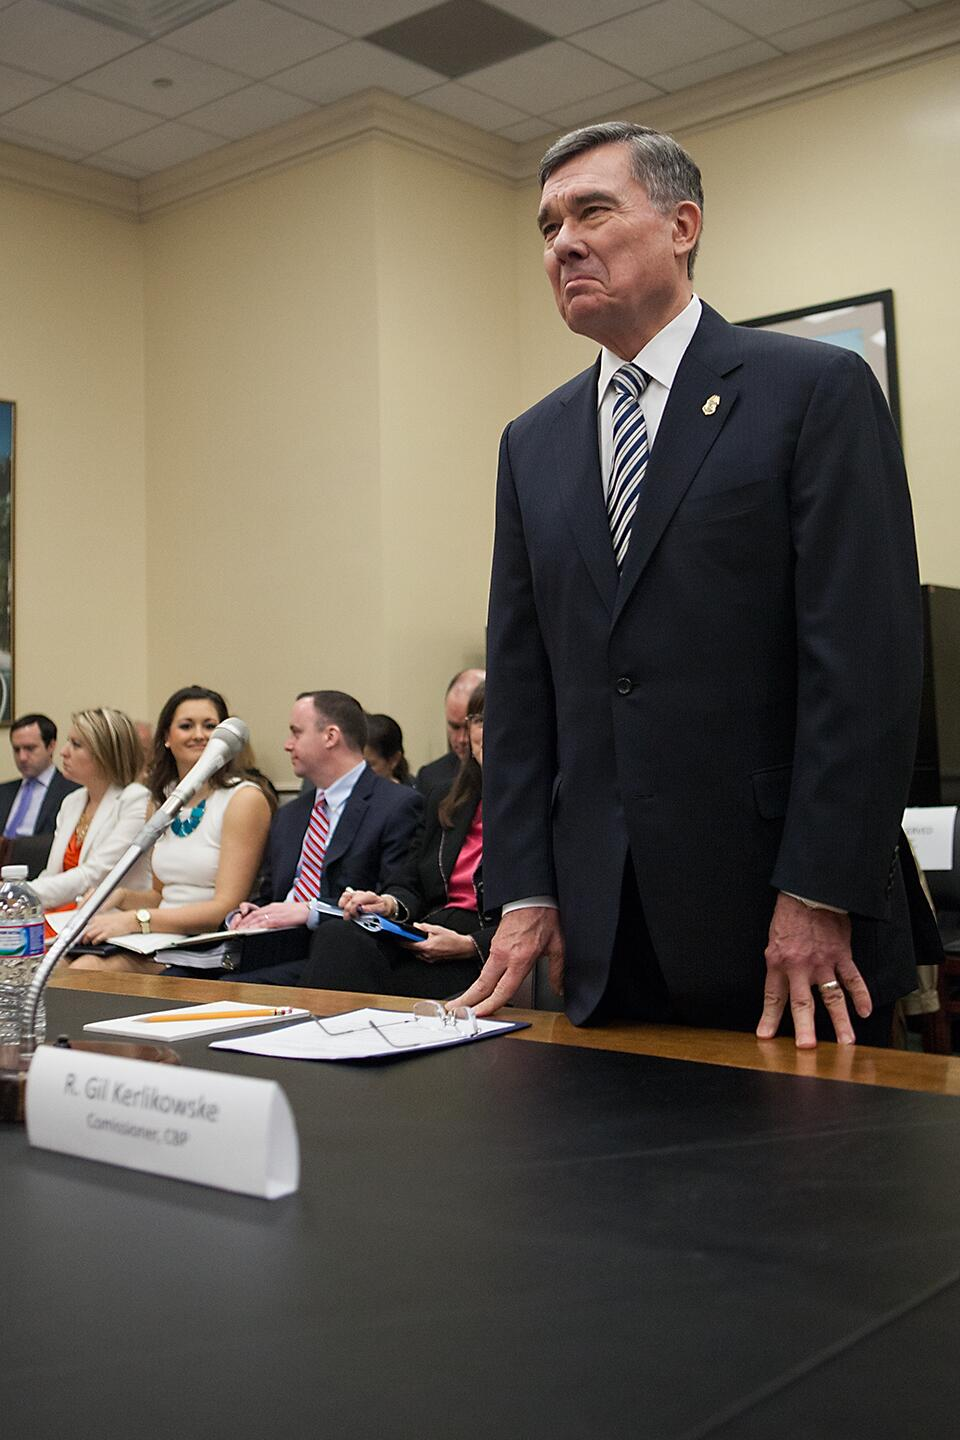 CBP Commissioner R. Gil Kerlikowske is introduced to members of the House Appropriations Subcommittee on Homeland Security. The commissioner spoke concerning CBP's budget priorities for fiscal year 2015.<em> (Photo by Josh Denmark)</em>